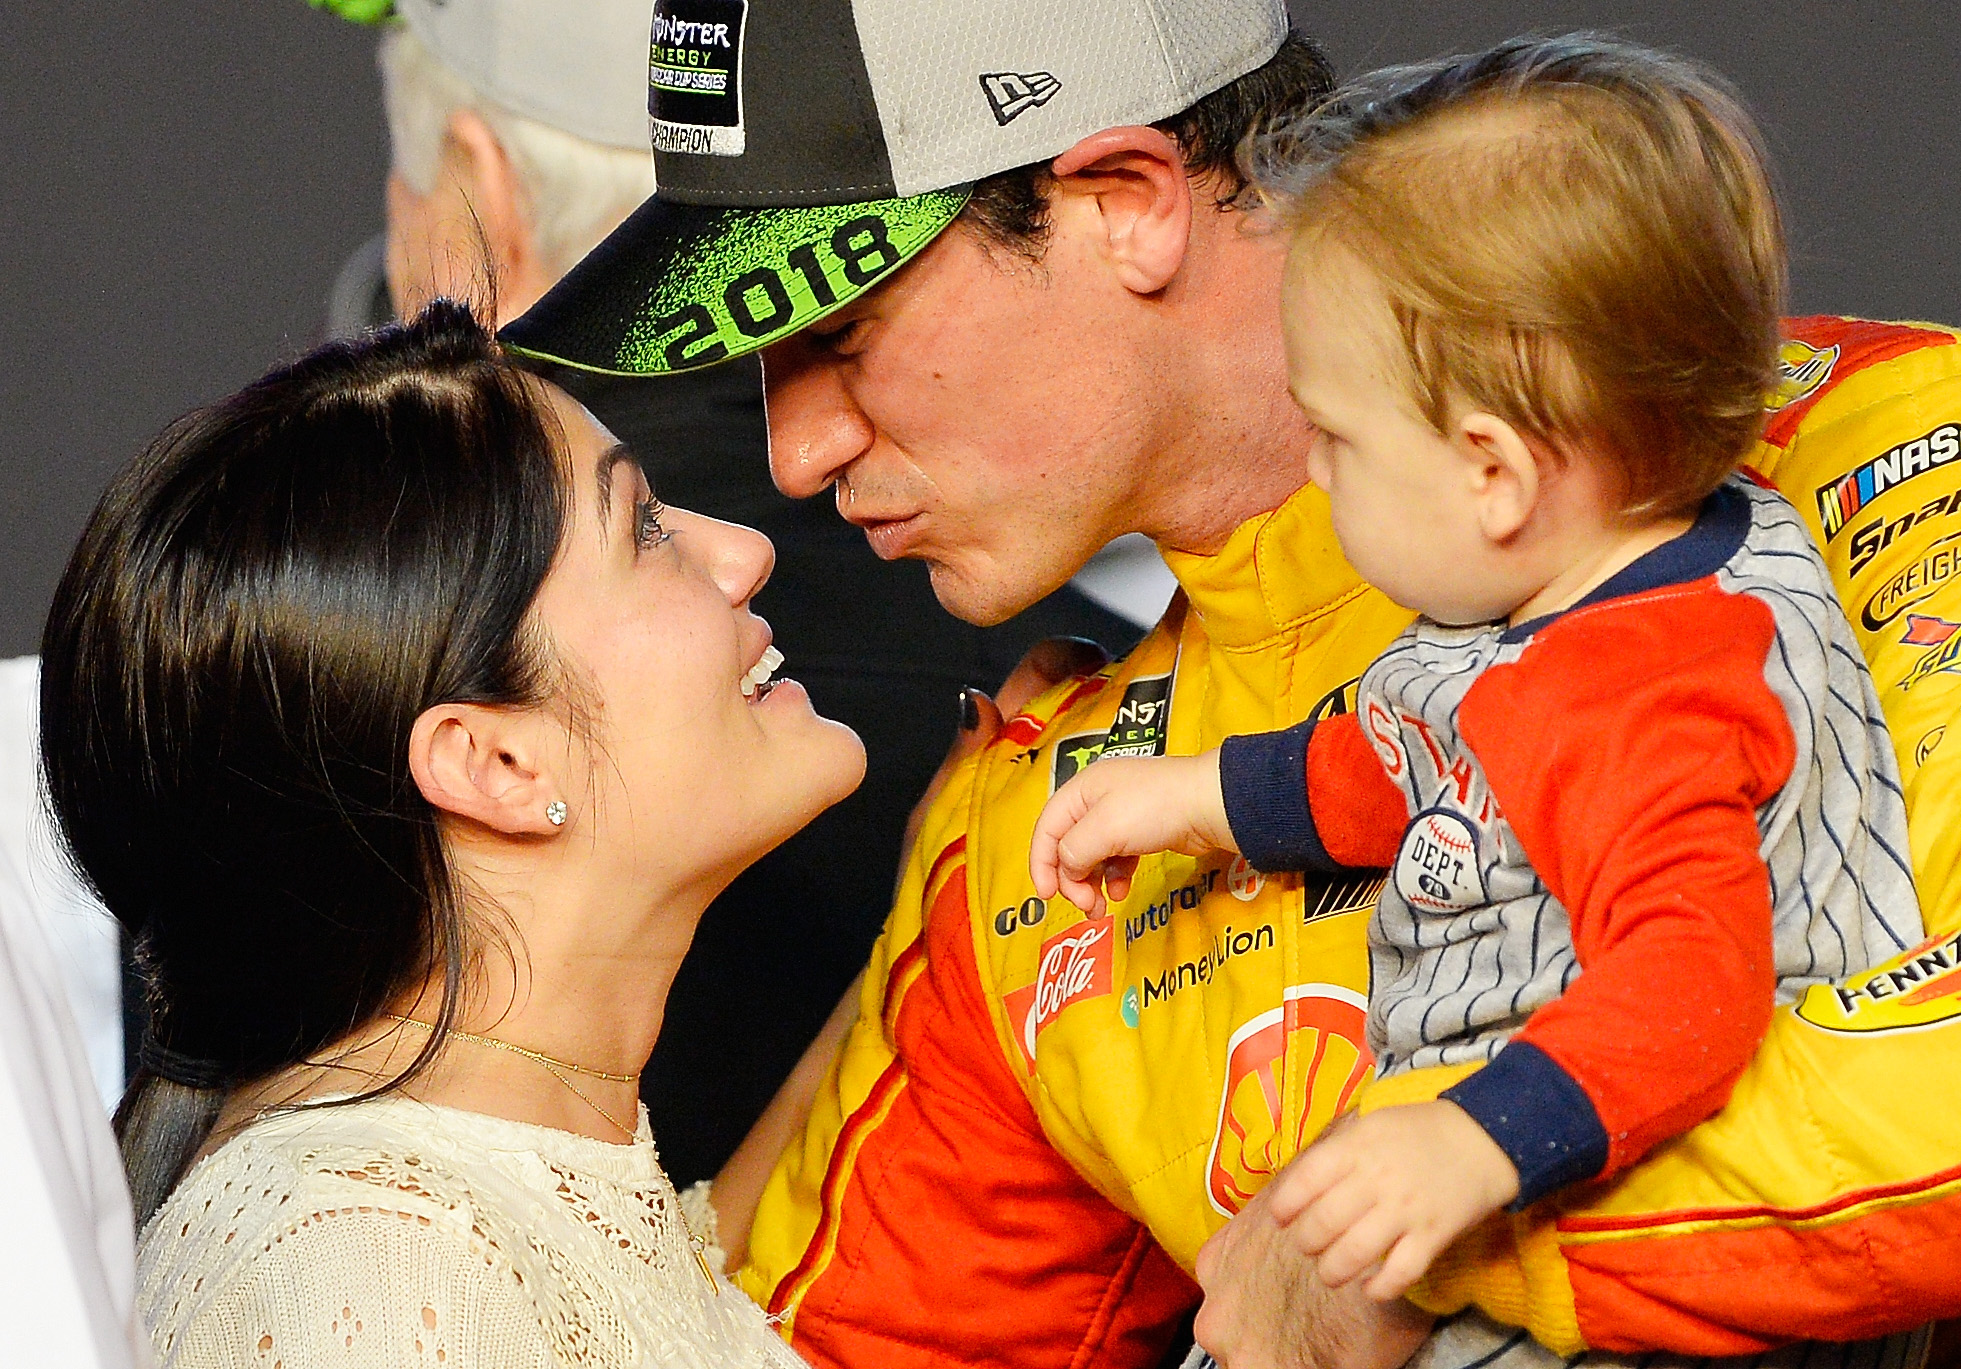 NASCAR driver Joey Logano with his wife and son